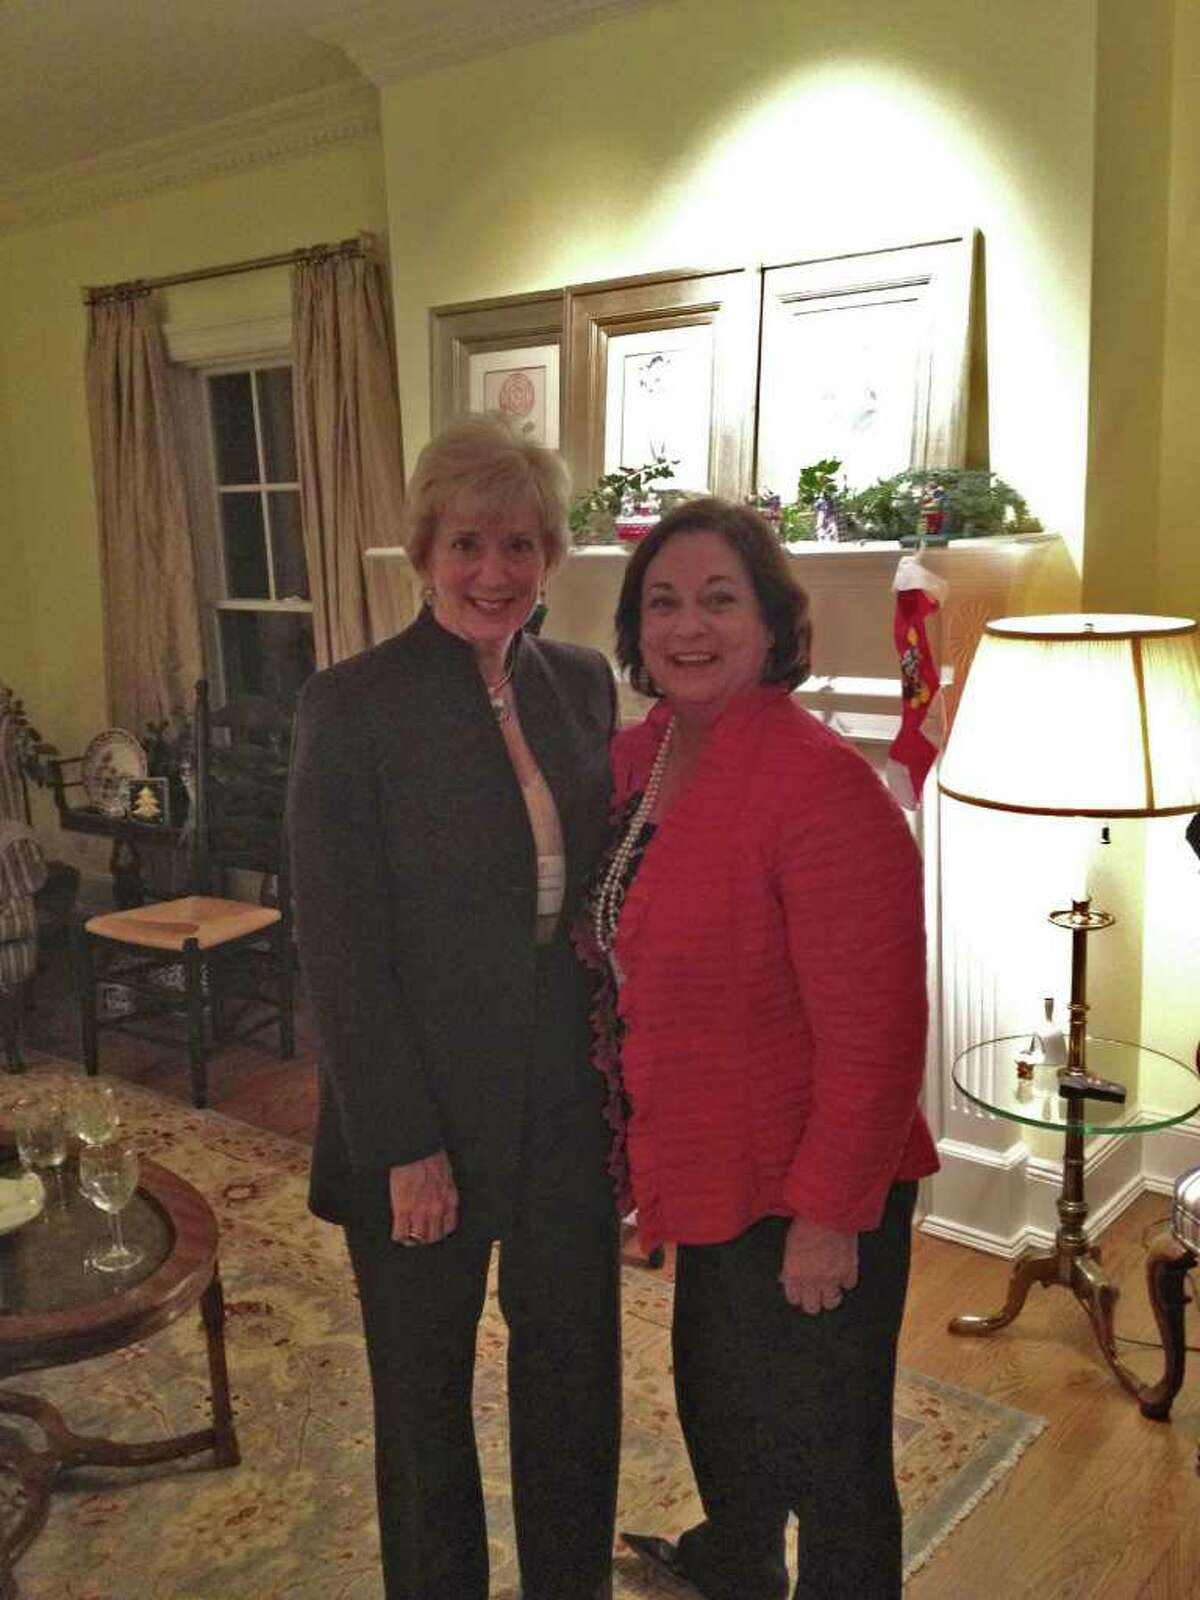 Republican Senate hopeful Linda McMahon, left, and Kathy McShane, managing director of Ladies Who Launch, at a recent event.